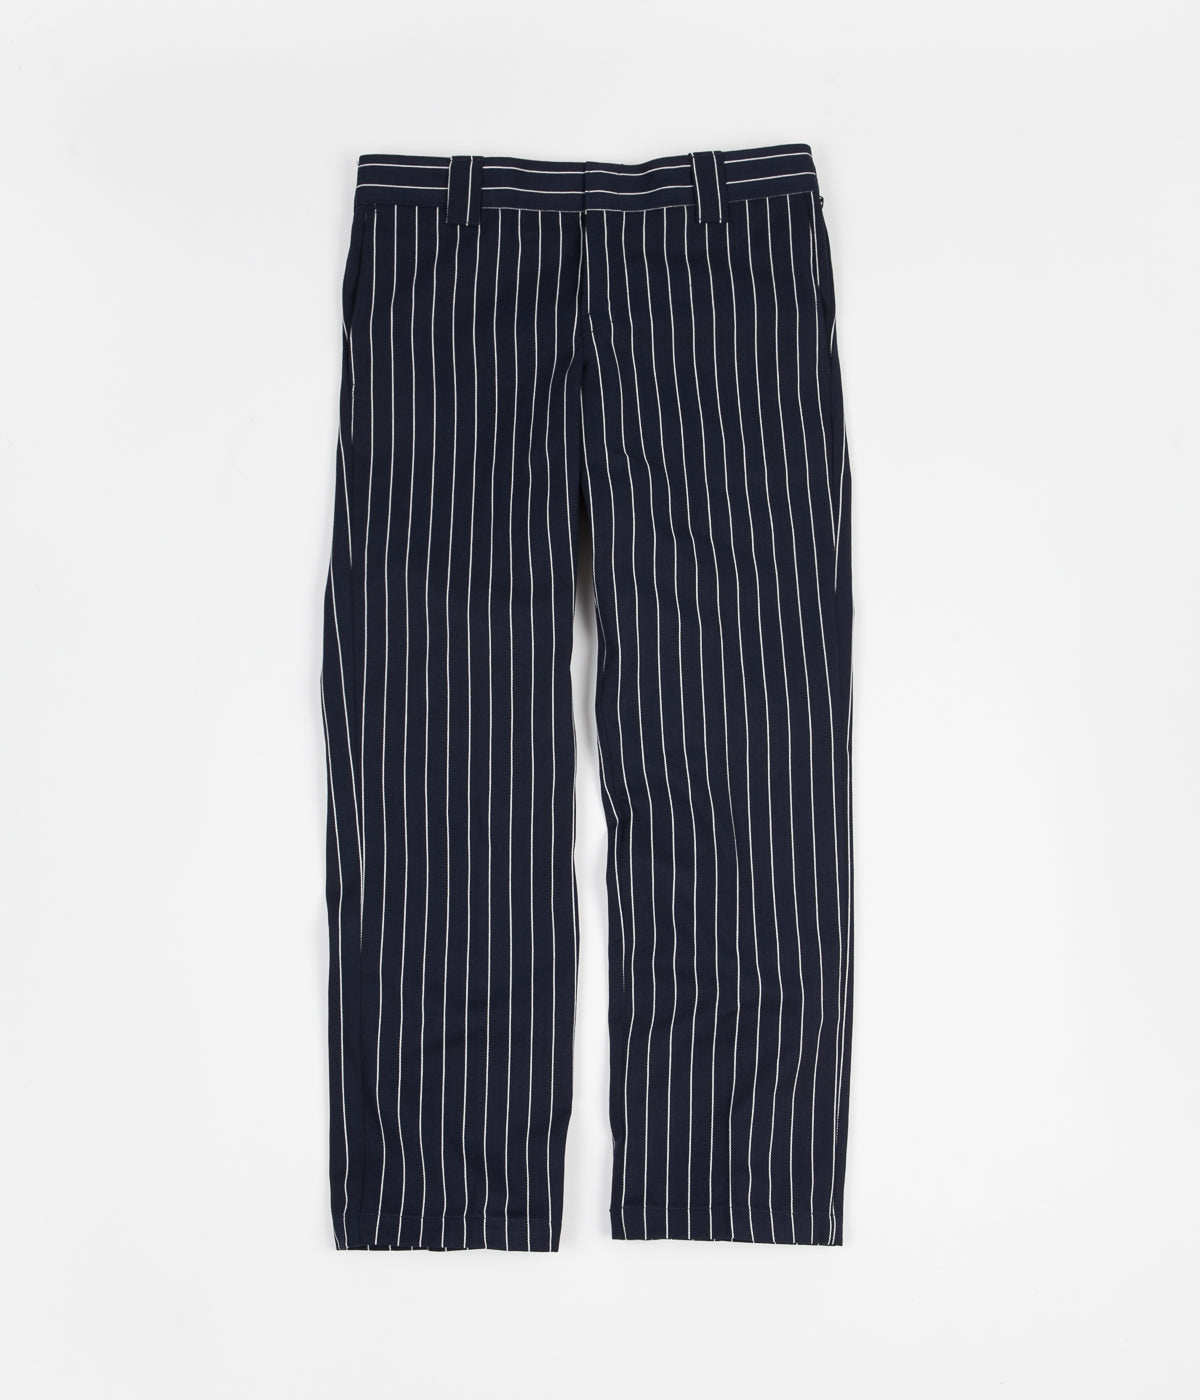 Dickies 873 Stripe Work Trousers - Navy Blue